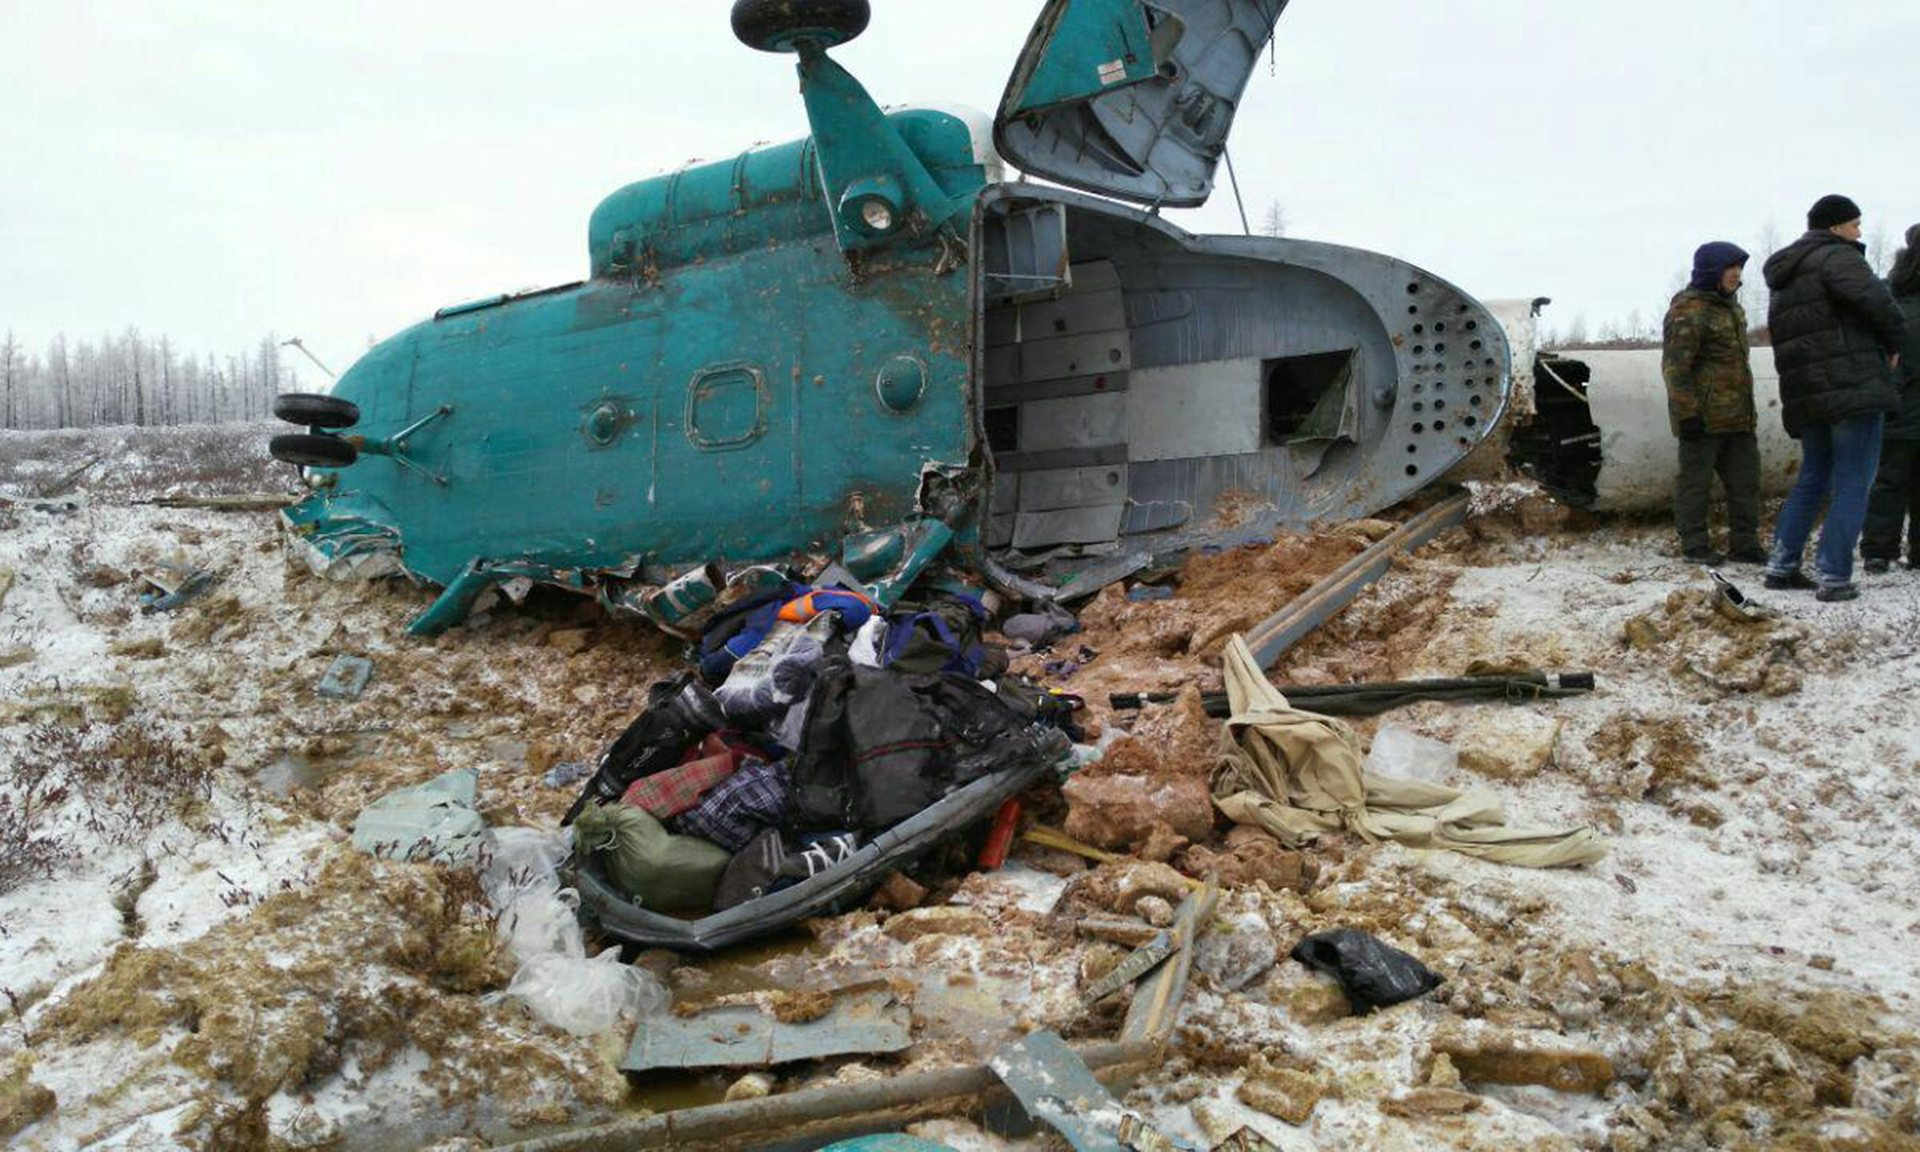 mi 8 helicopter crash with Accident Mortel Dun Mil Mi 8 Civil En Siberie on Beaches likewise File East German Mi 8 moreover File Russian Air Force Mil Mi 8MTV 5 Beltyukov 1 likewise Mi 24 Hind furthermore Liquidadores De Chernobyl.